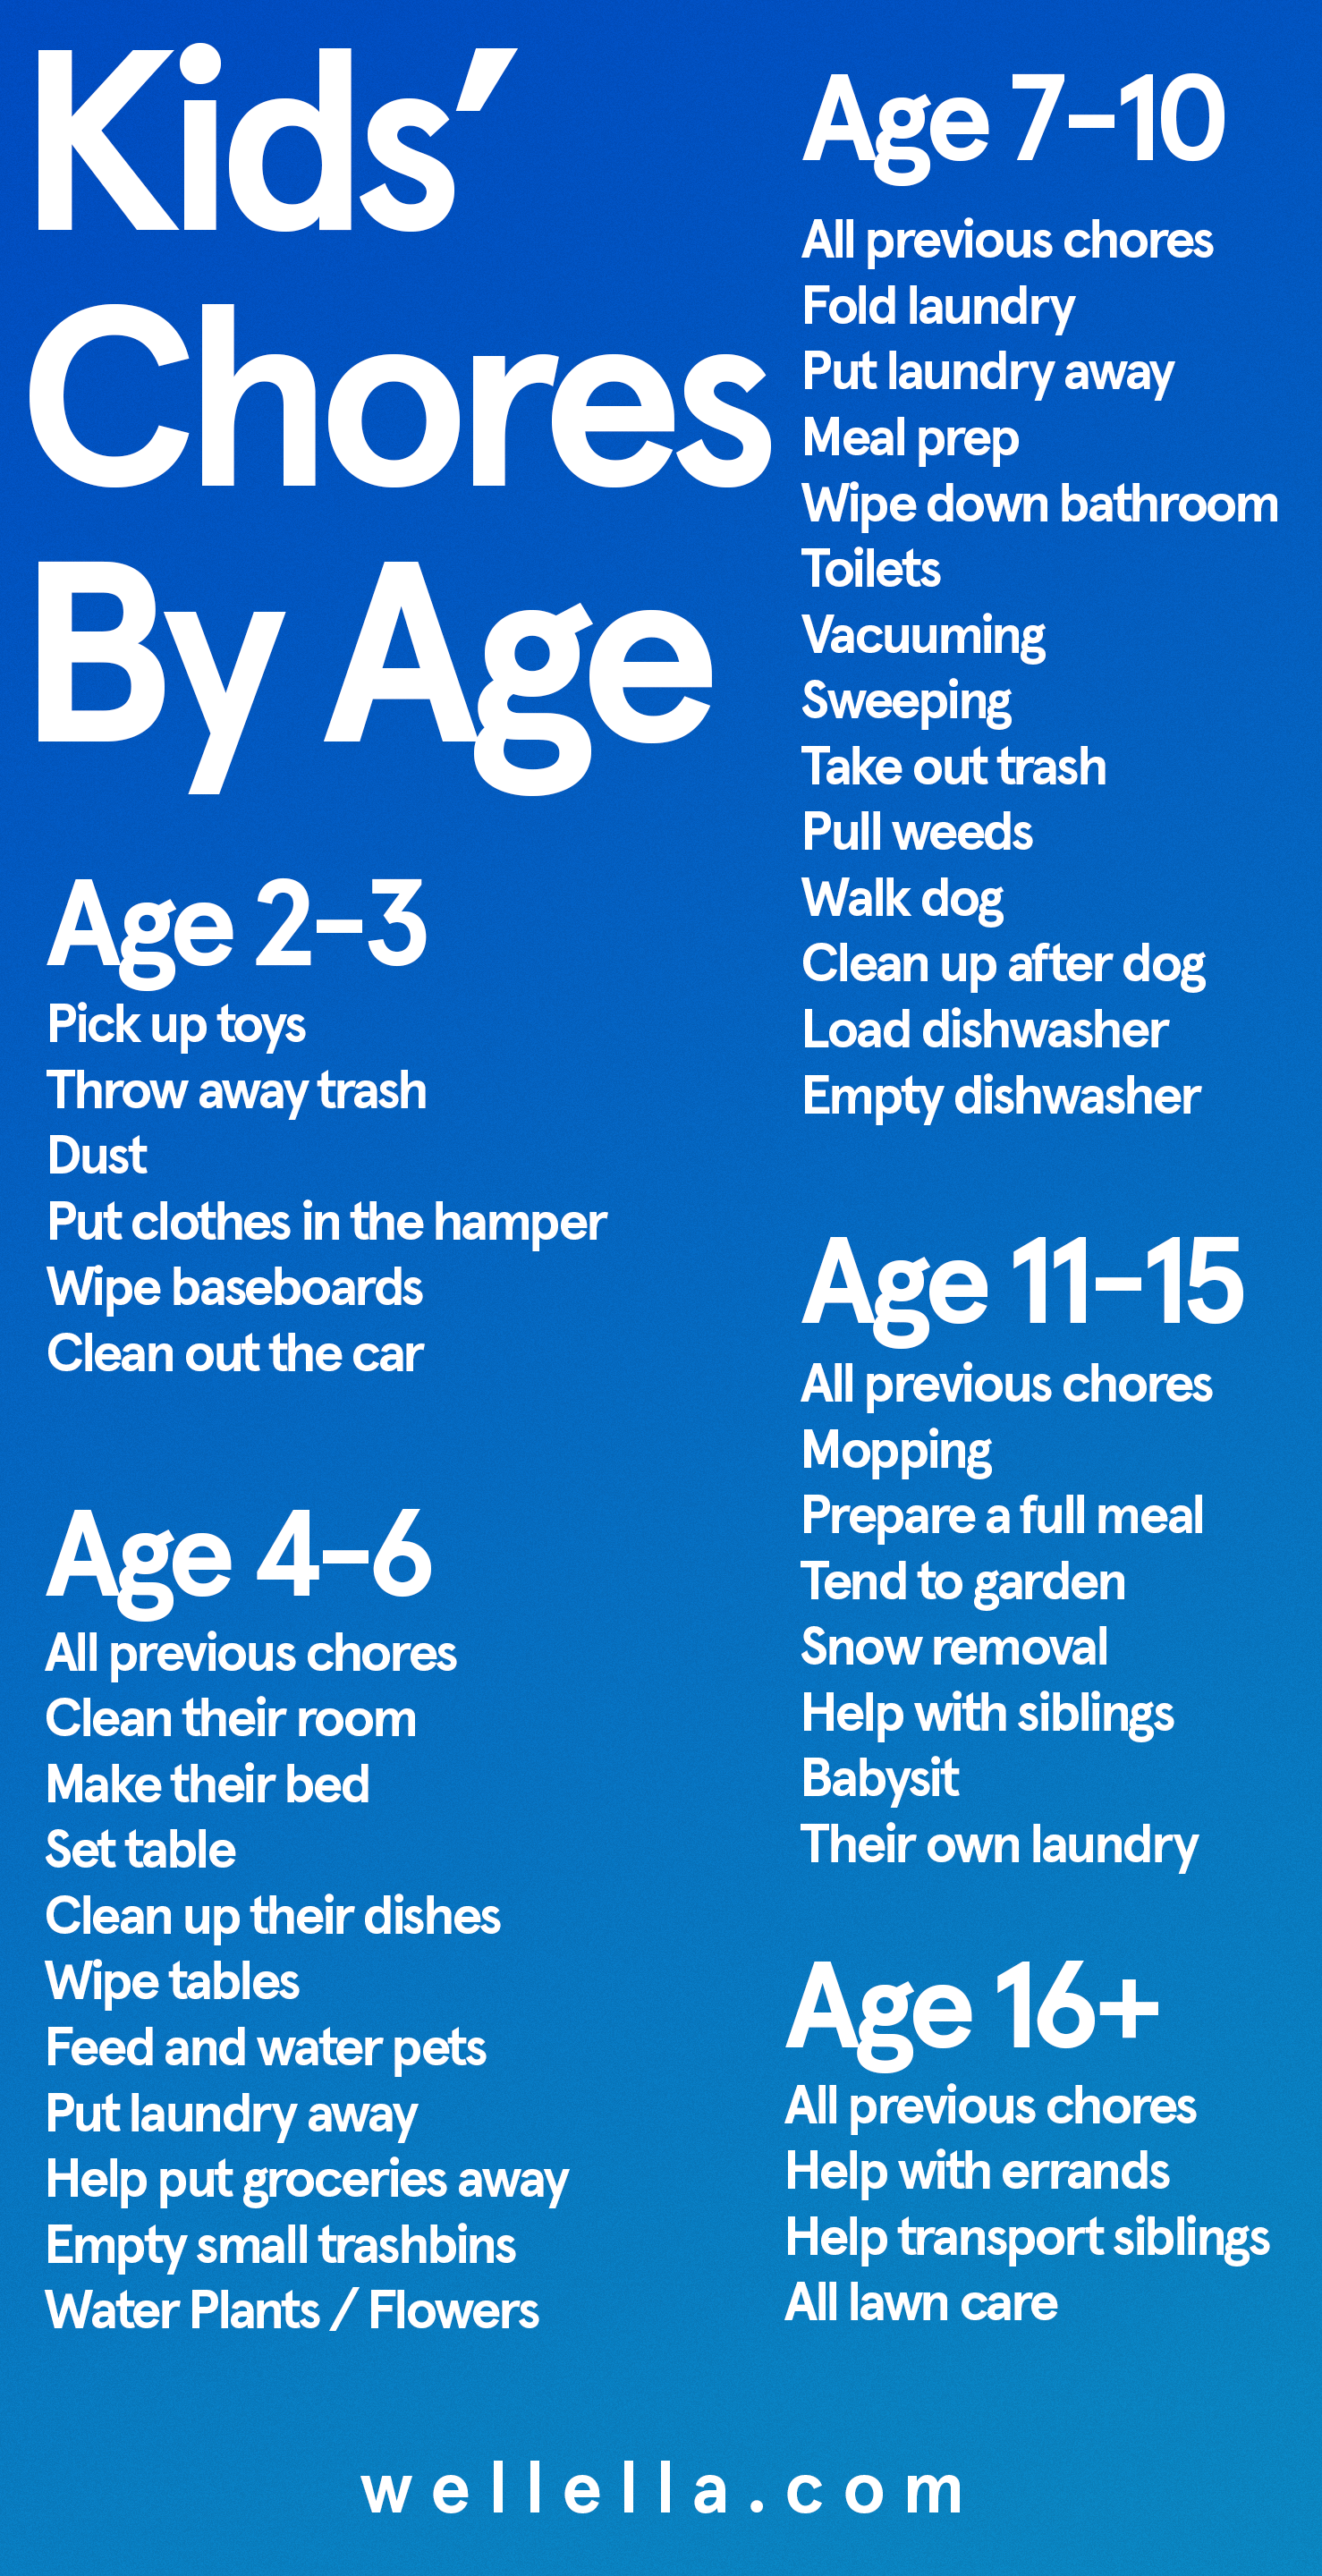 Kids Chores By Age Chart